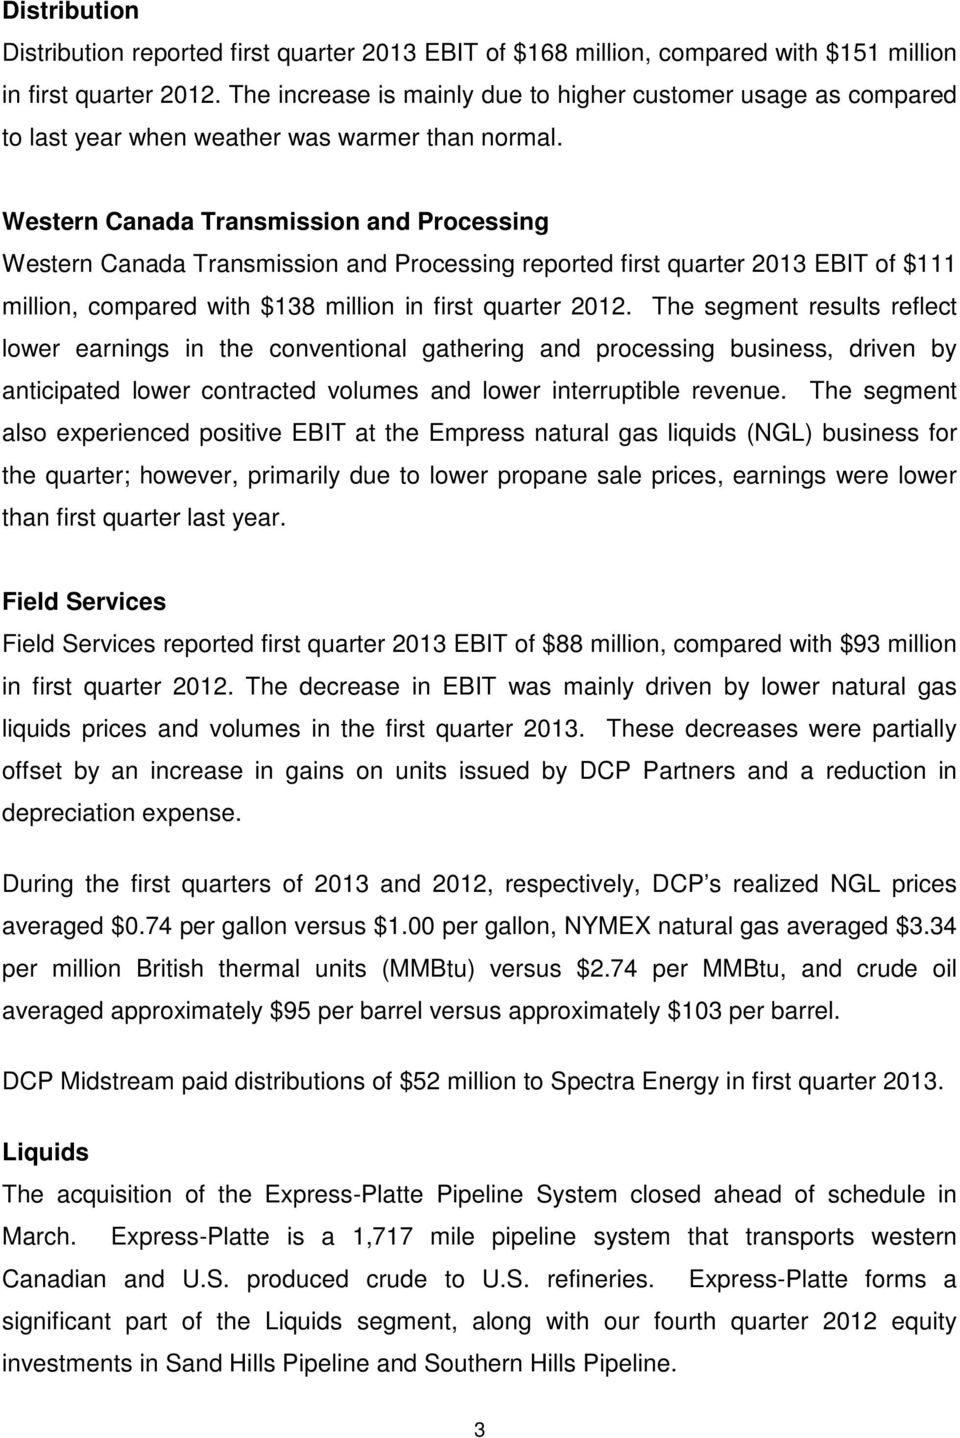 Western Canada Transmission and Processing Western Canada Transmission and Processing reported first quarter 2013 EBIT of $111 million, compared with $138 million in first quarter 2012.